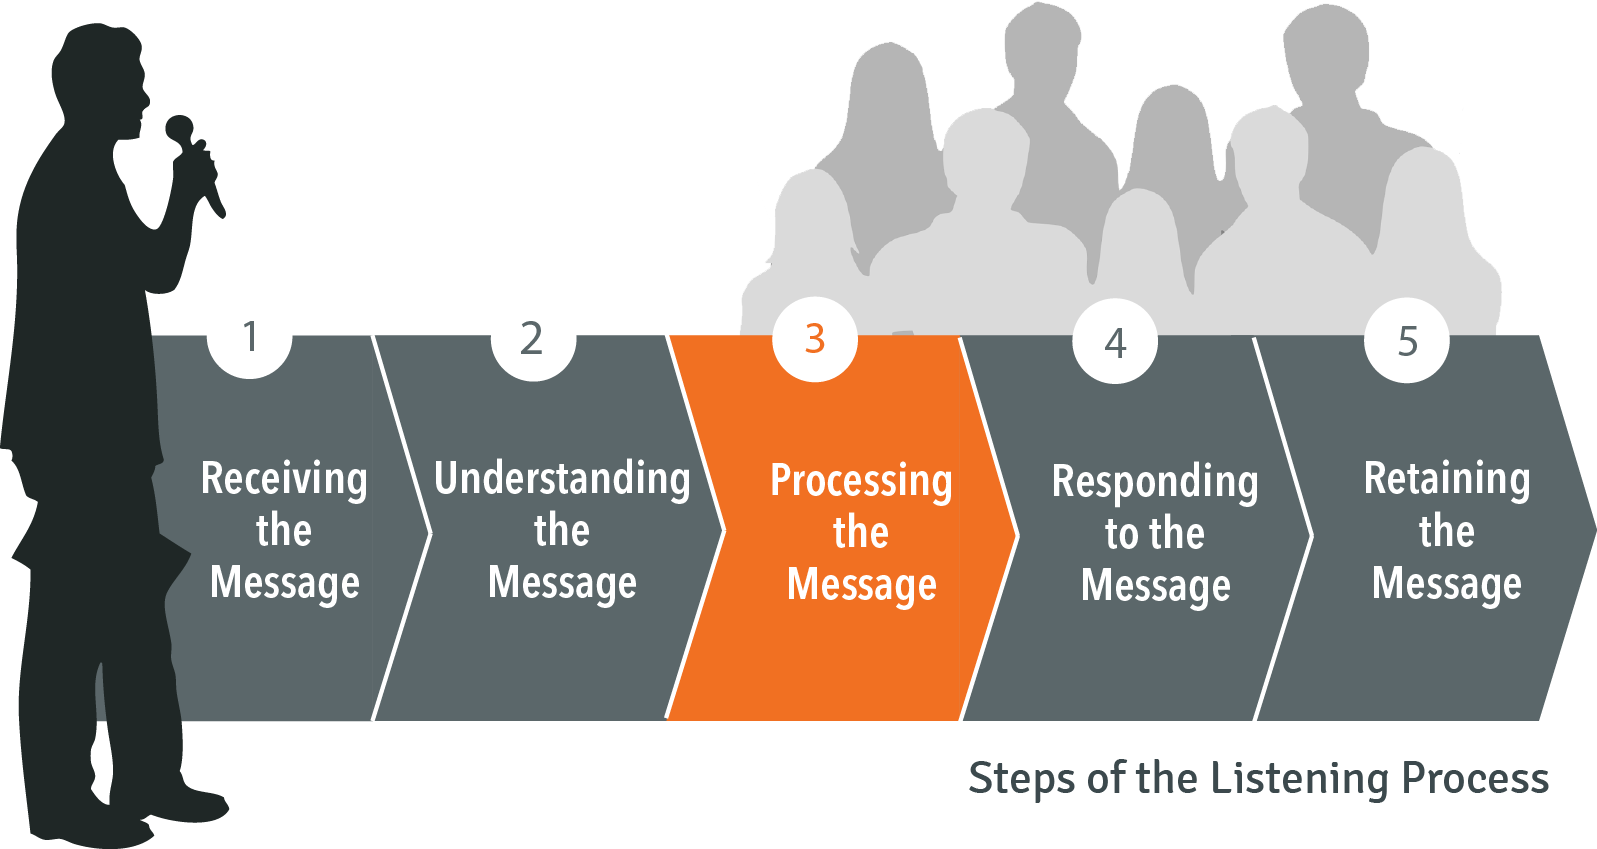 Steps of the listening process: 3. Processing the message